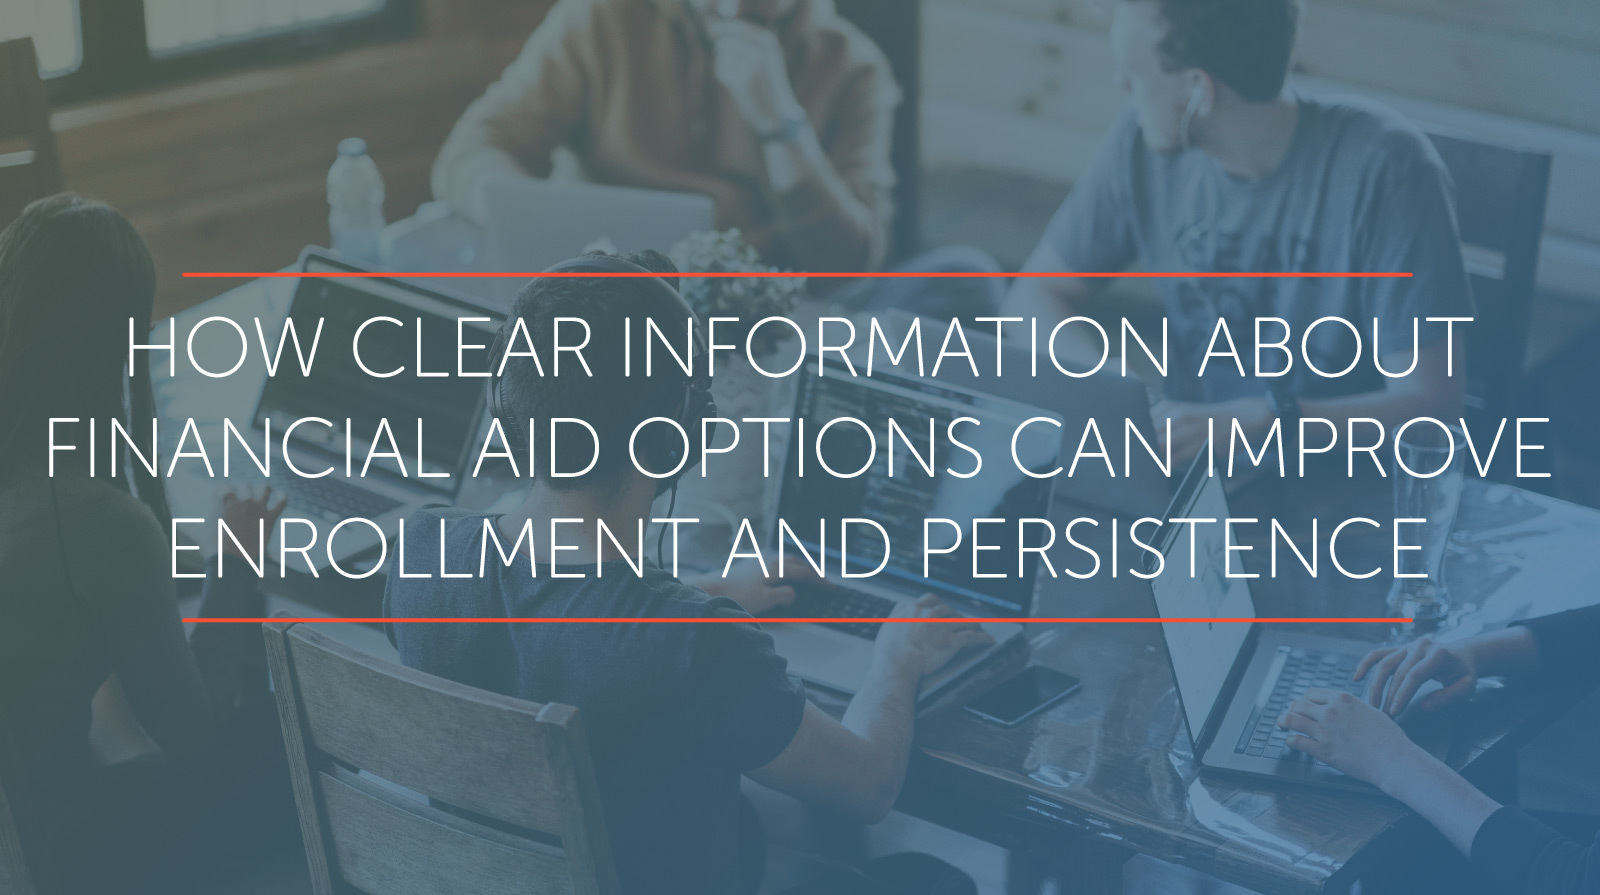 how clear information about financial aid options can improve enrollment and persistence